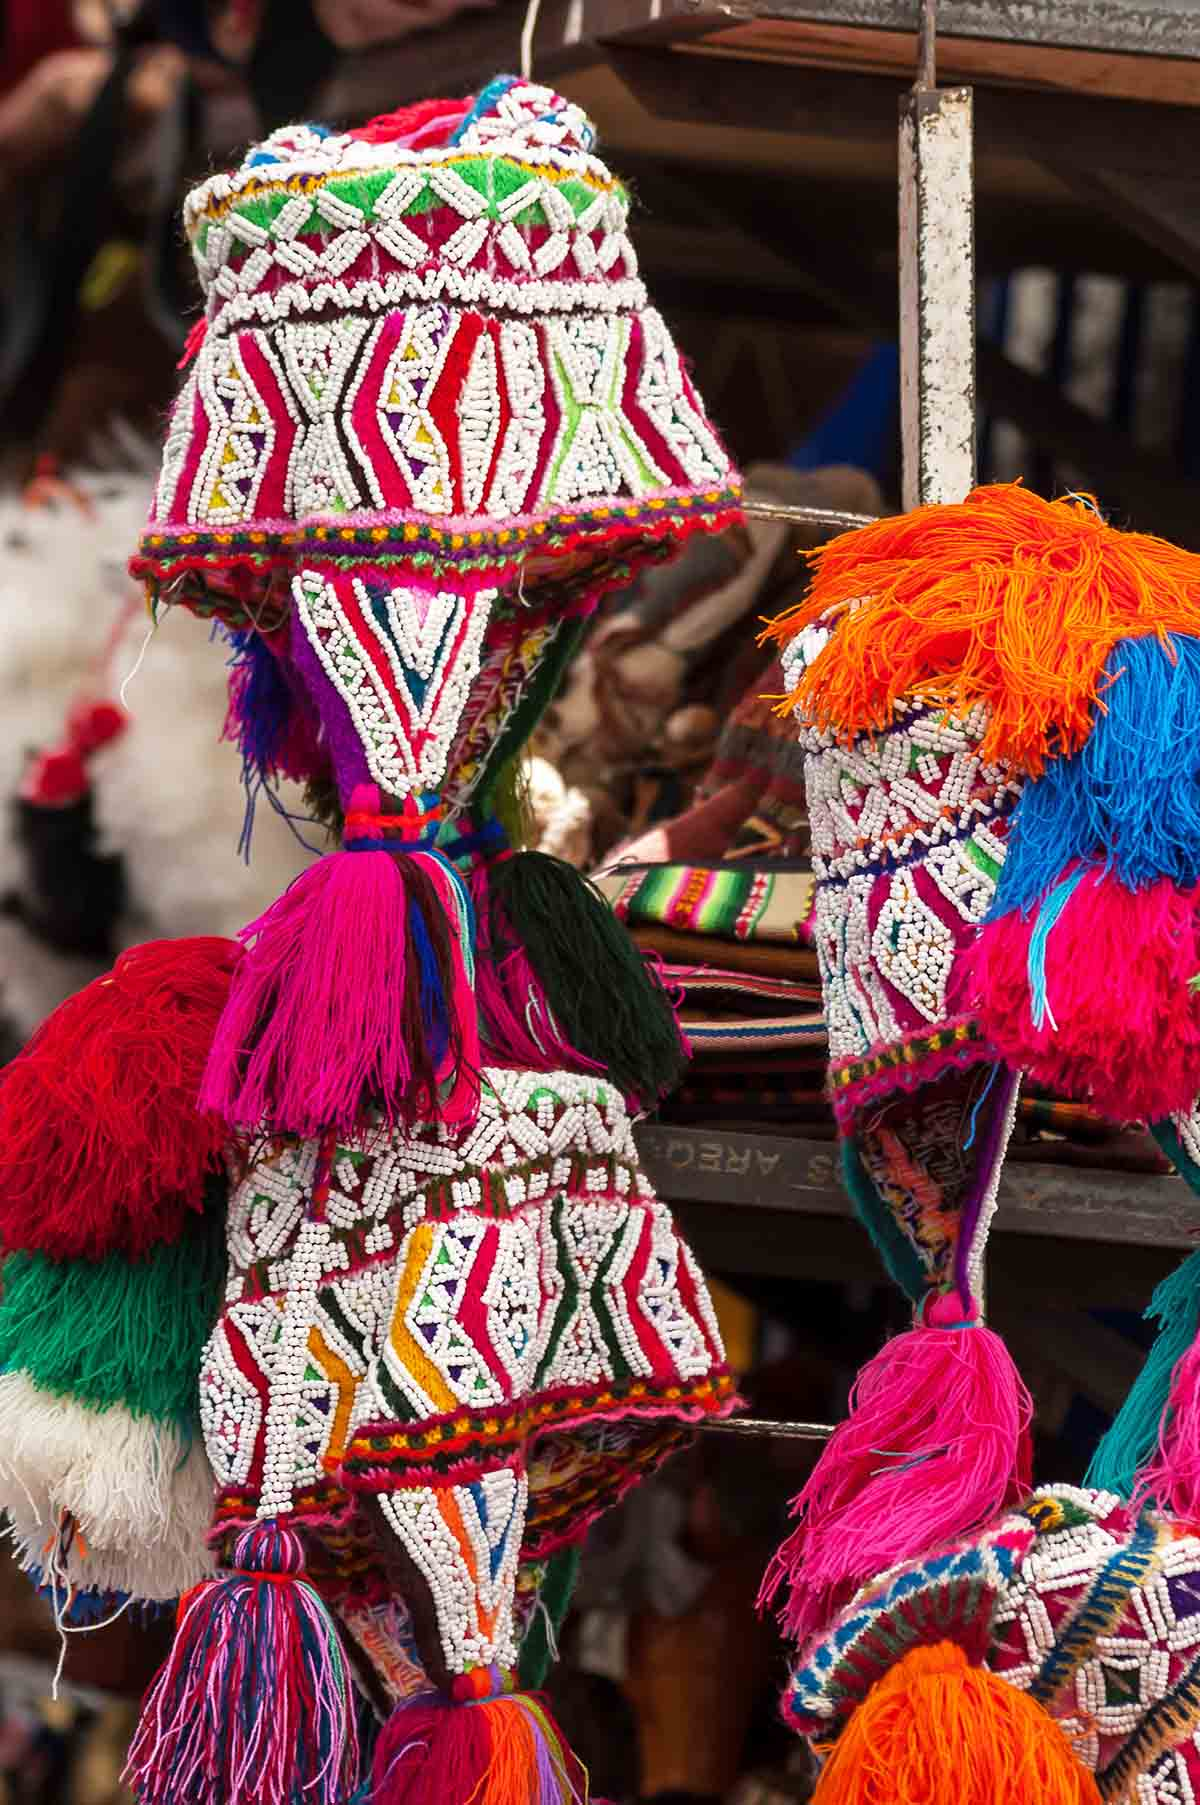 Bright red, yellow, and green chullos with white beading and tassels.